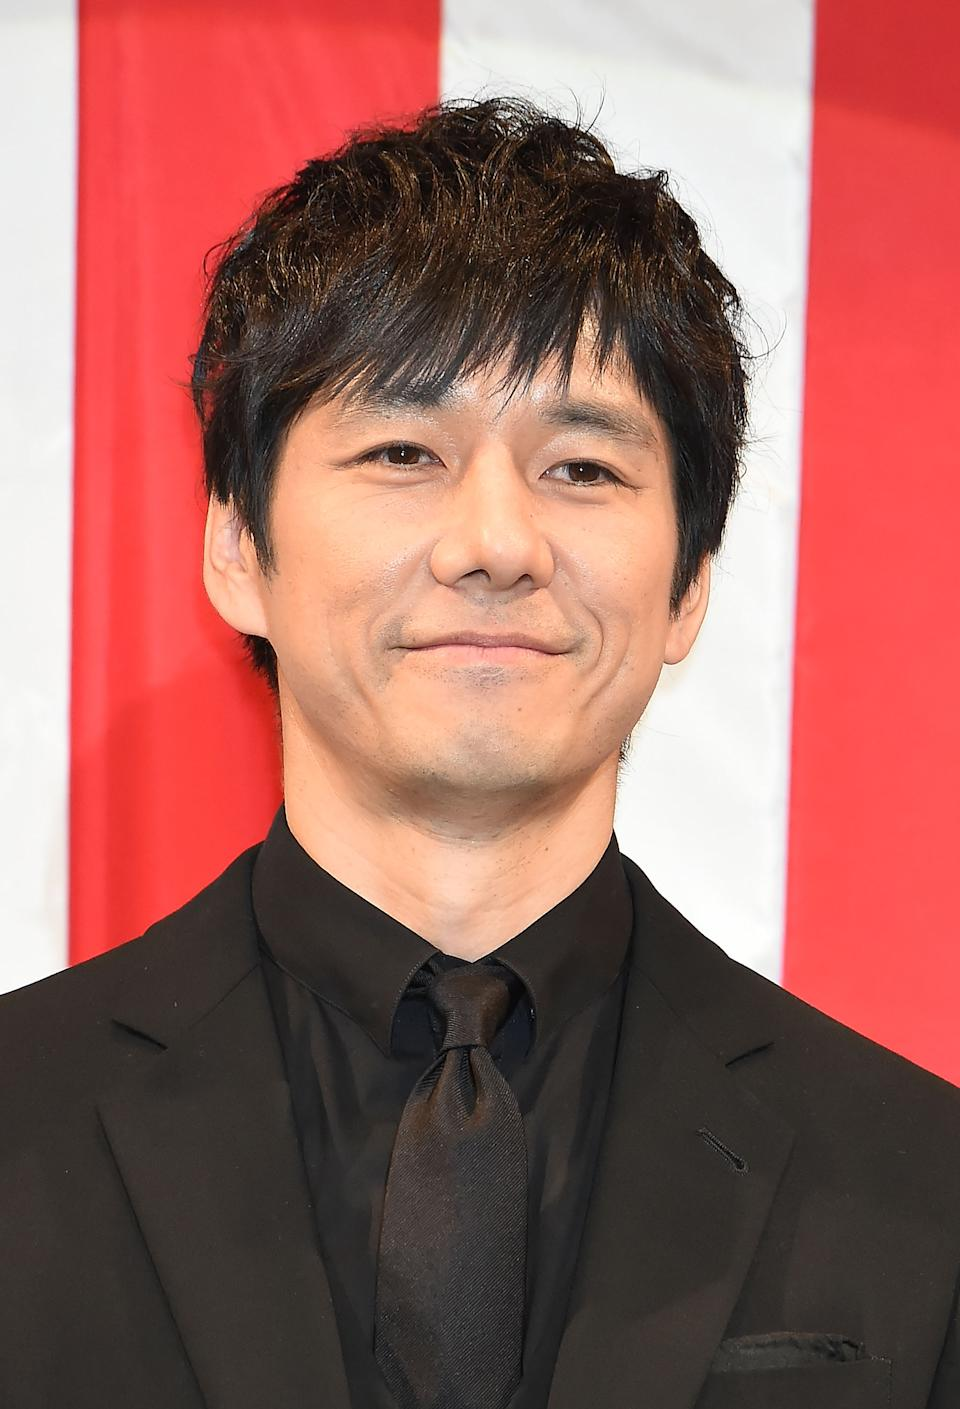 TOKYO, JAPAN - MARCH 14:  Hidetoshi Nishijima attends the 'Dumbo' Premiere at the Yamano Hall on March 14, 2019 in Tokyo, Japan.  (Photo by Jun Sato/WireImage)